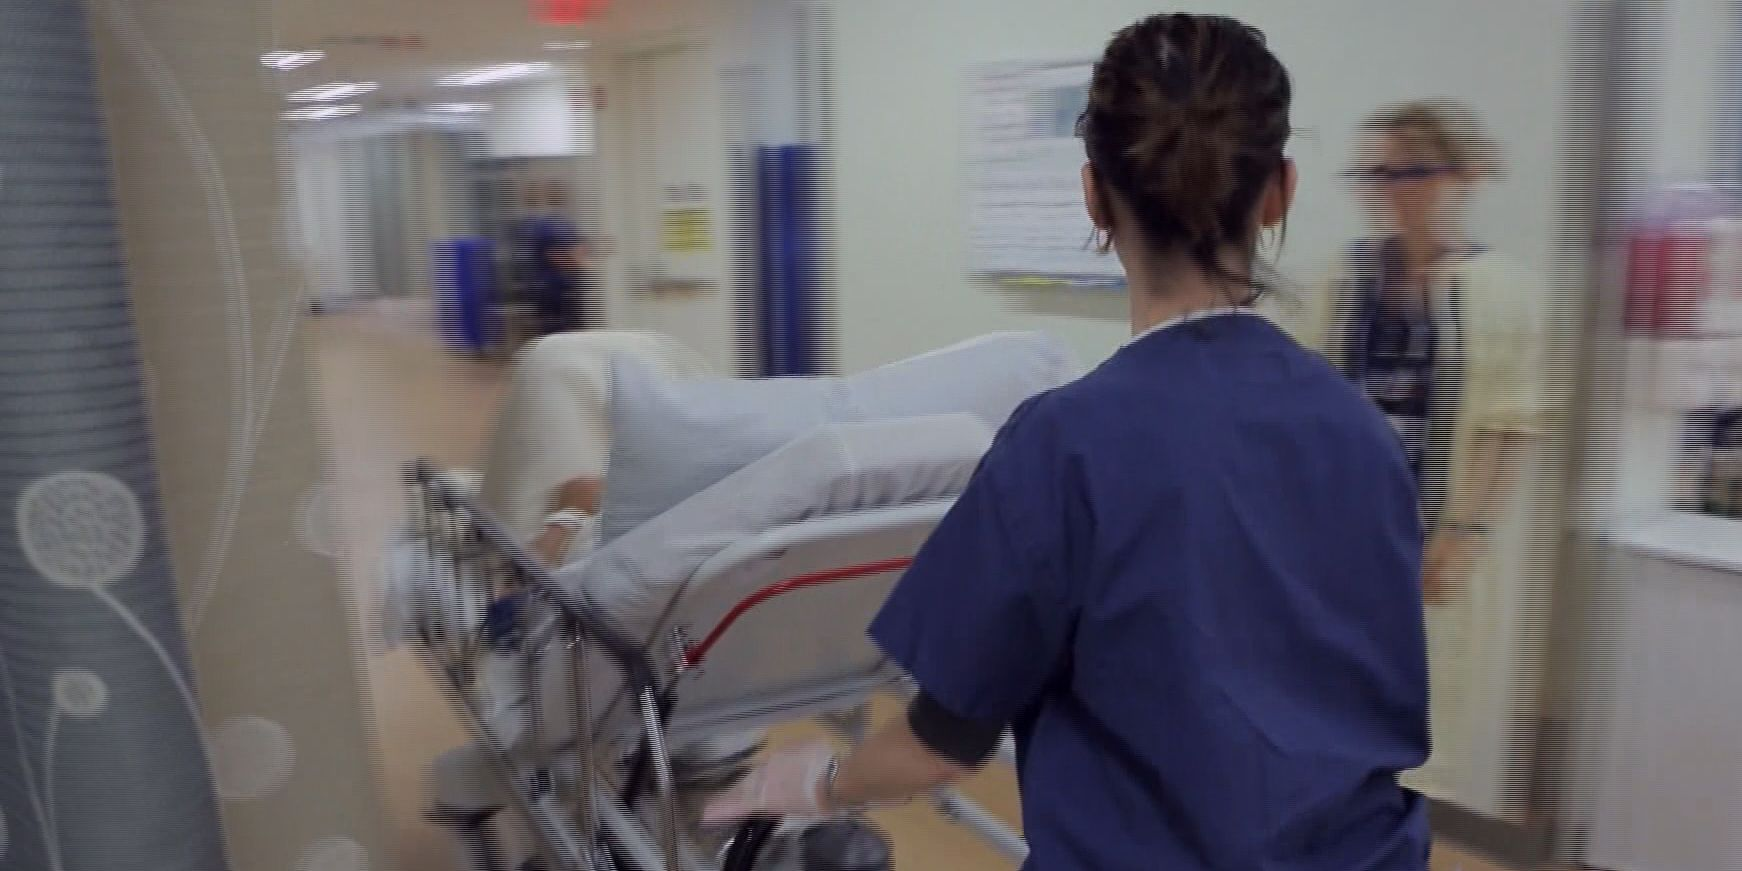 Nurse practitioner profession at record-high nationwide